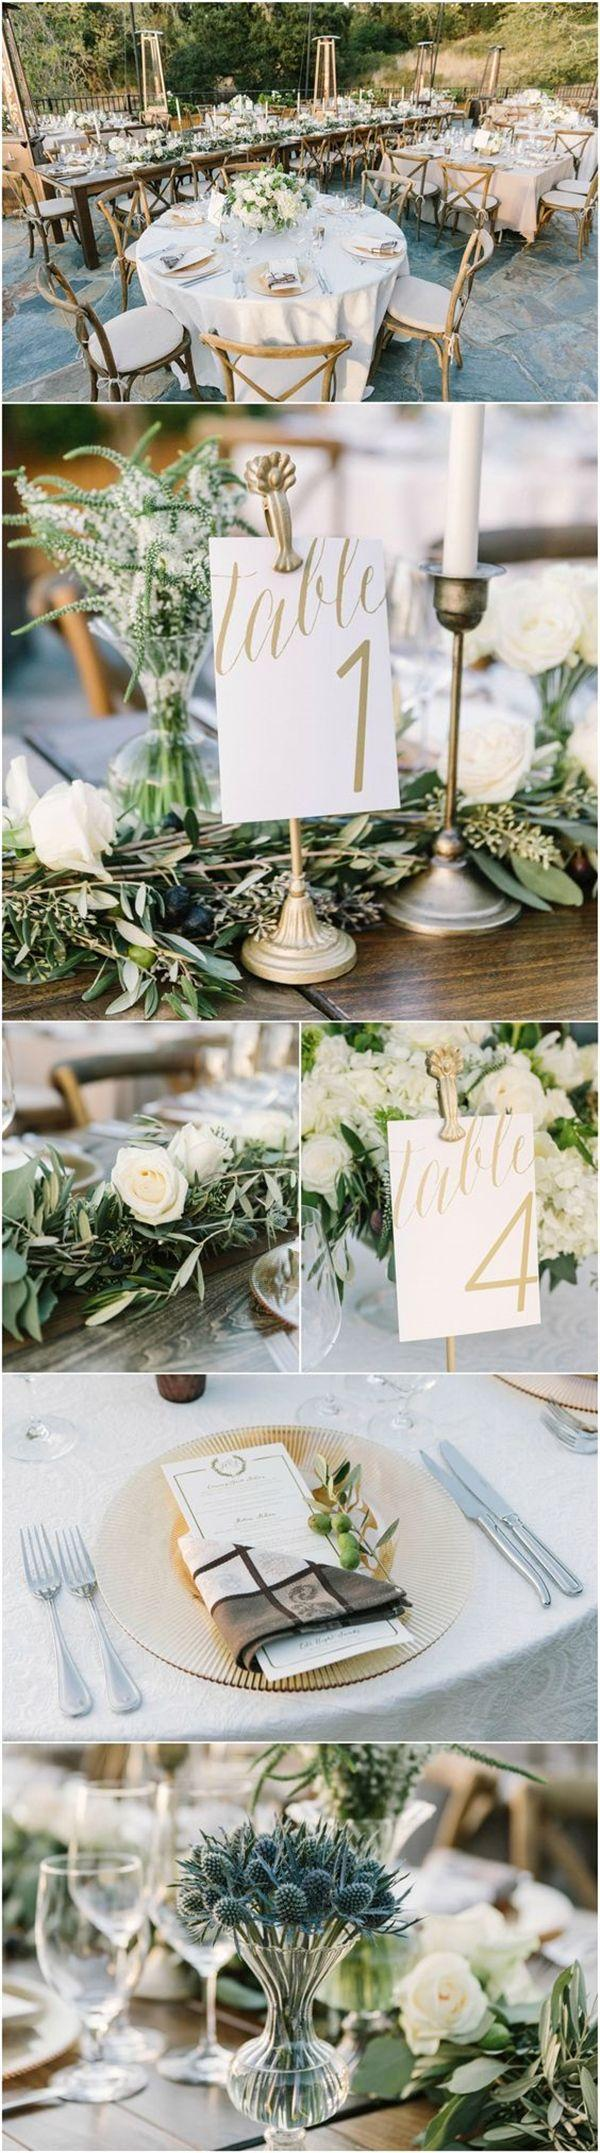 Wedding - Top 10 Wedding Flowers For Outdoor Ceremony You Must See